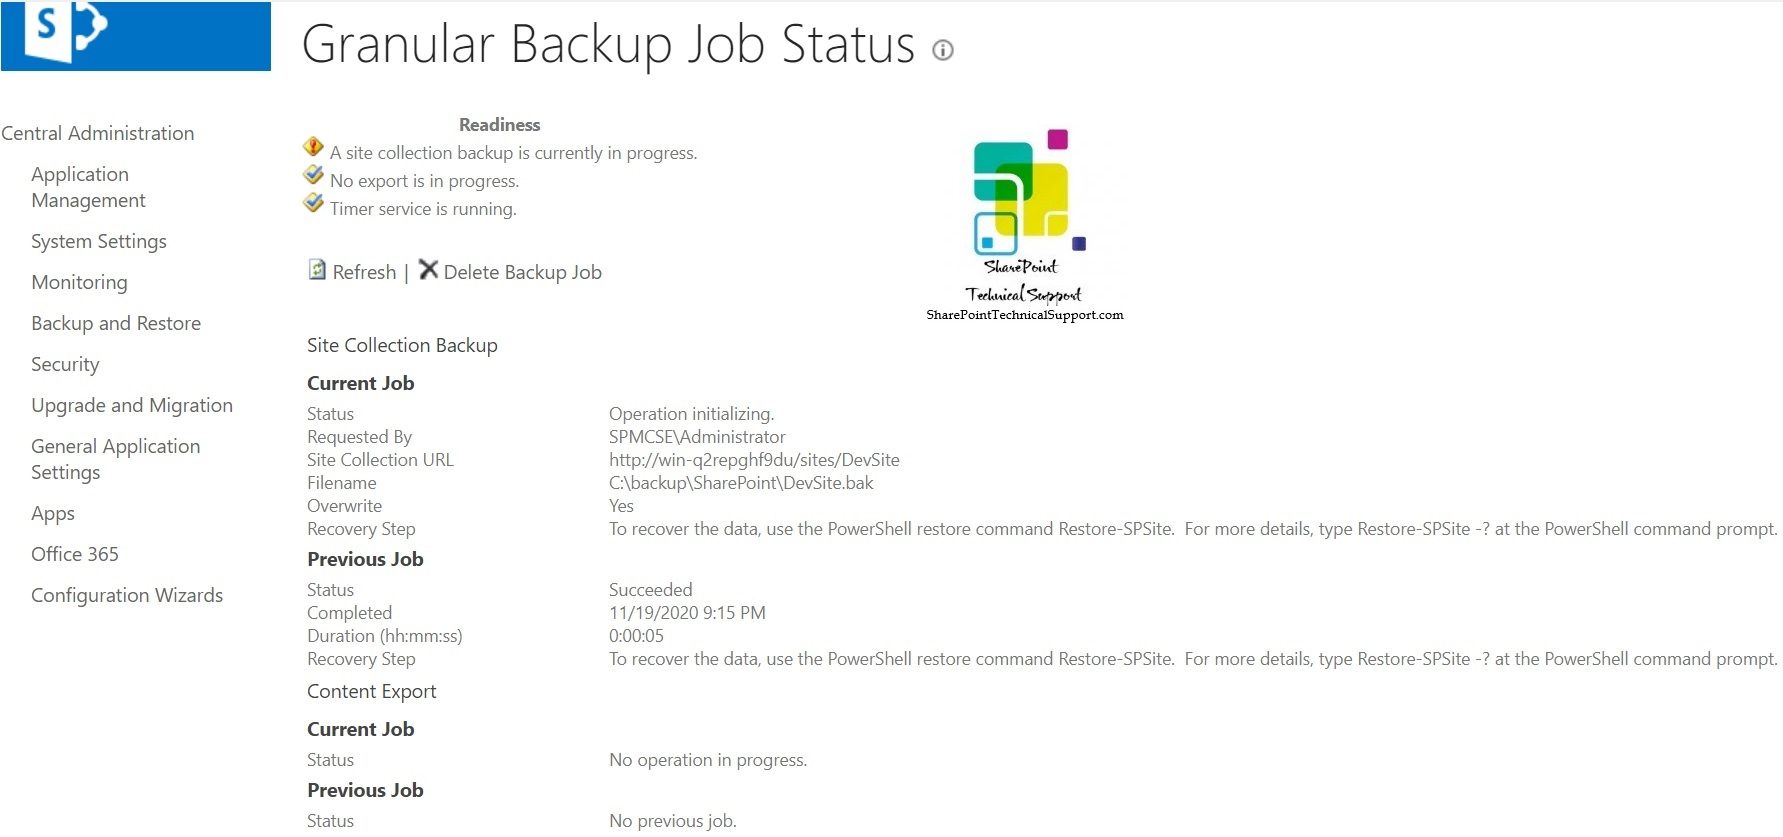 Granular Backup Job Status